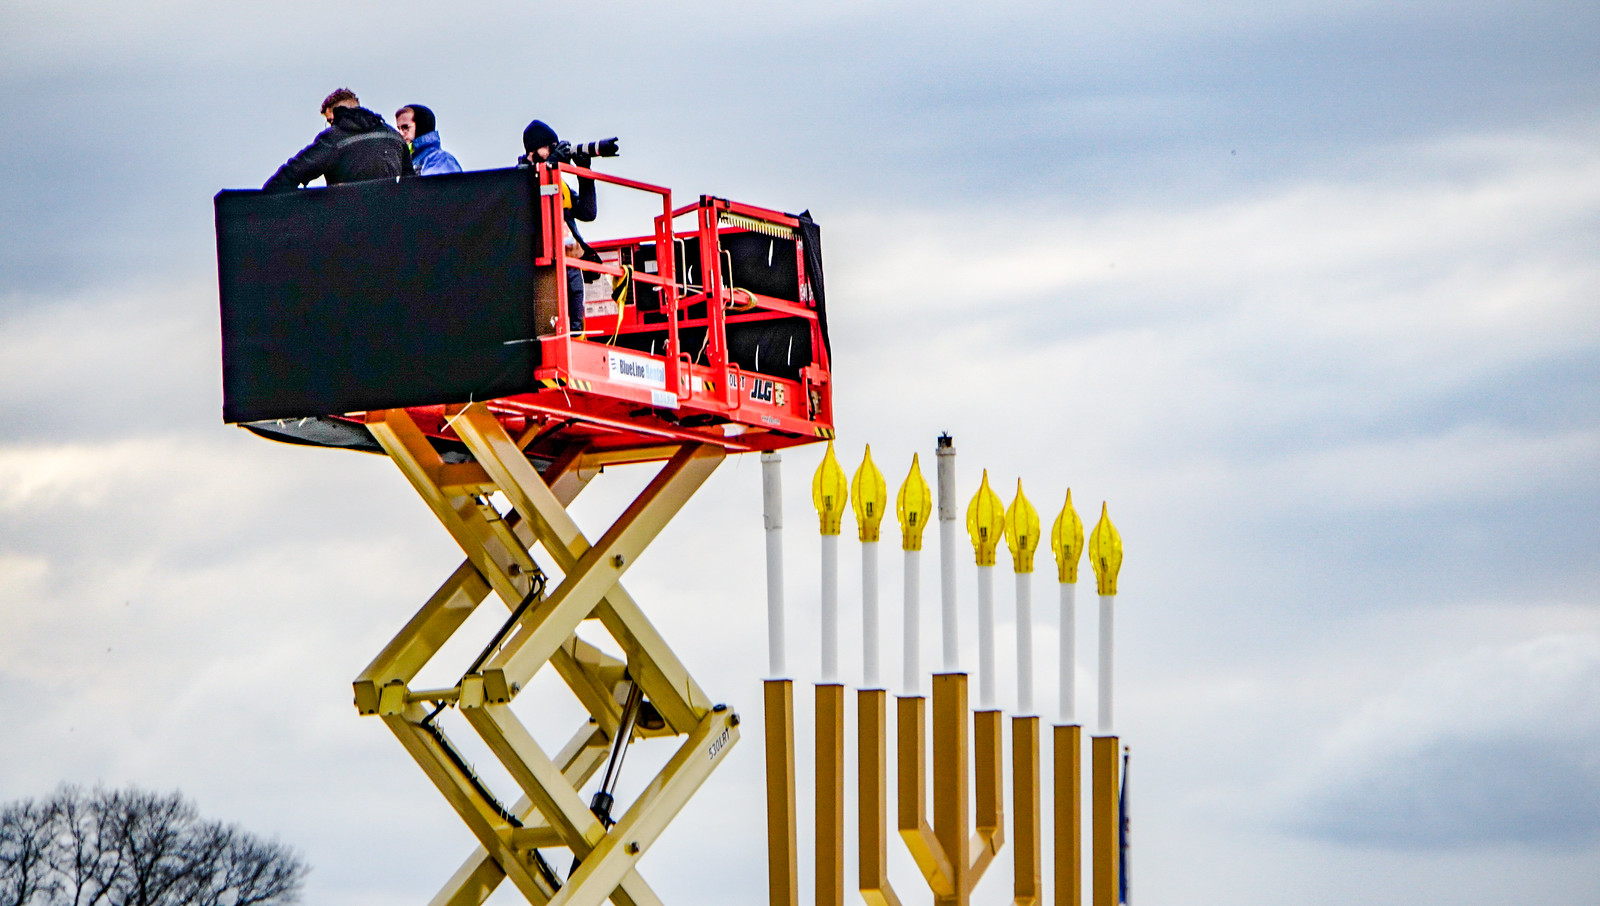 2017.12.12 National Menorah, Washington, DC USA 1361